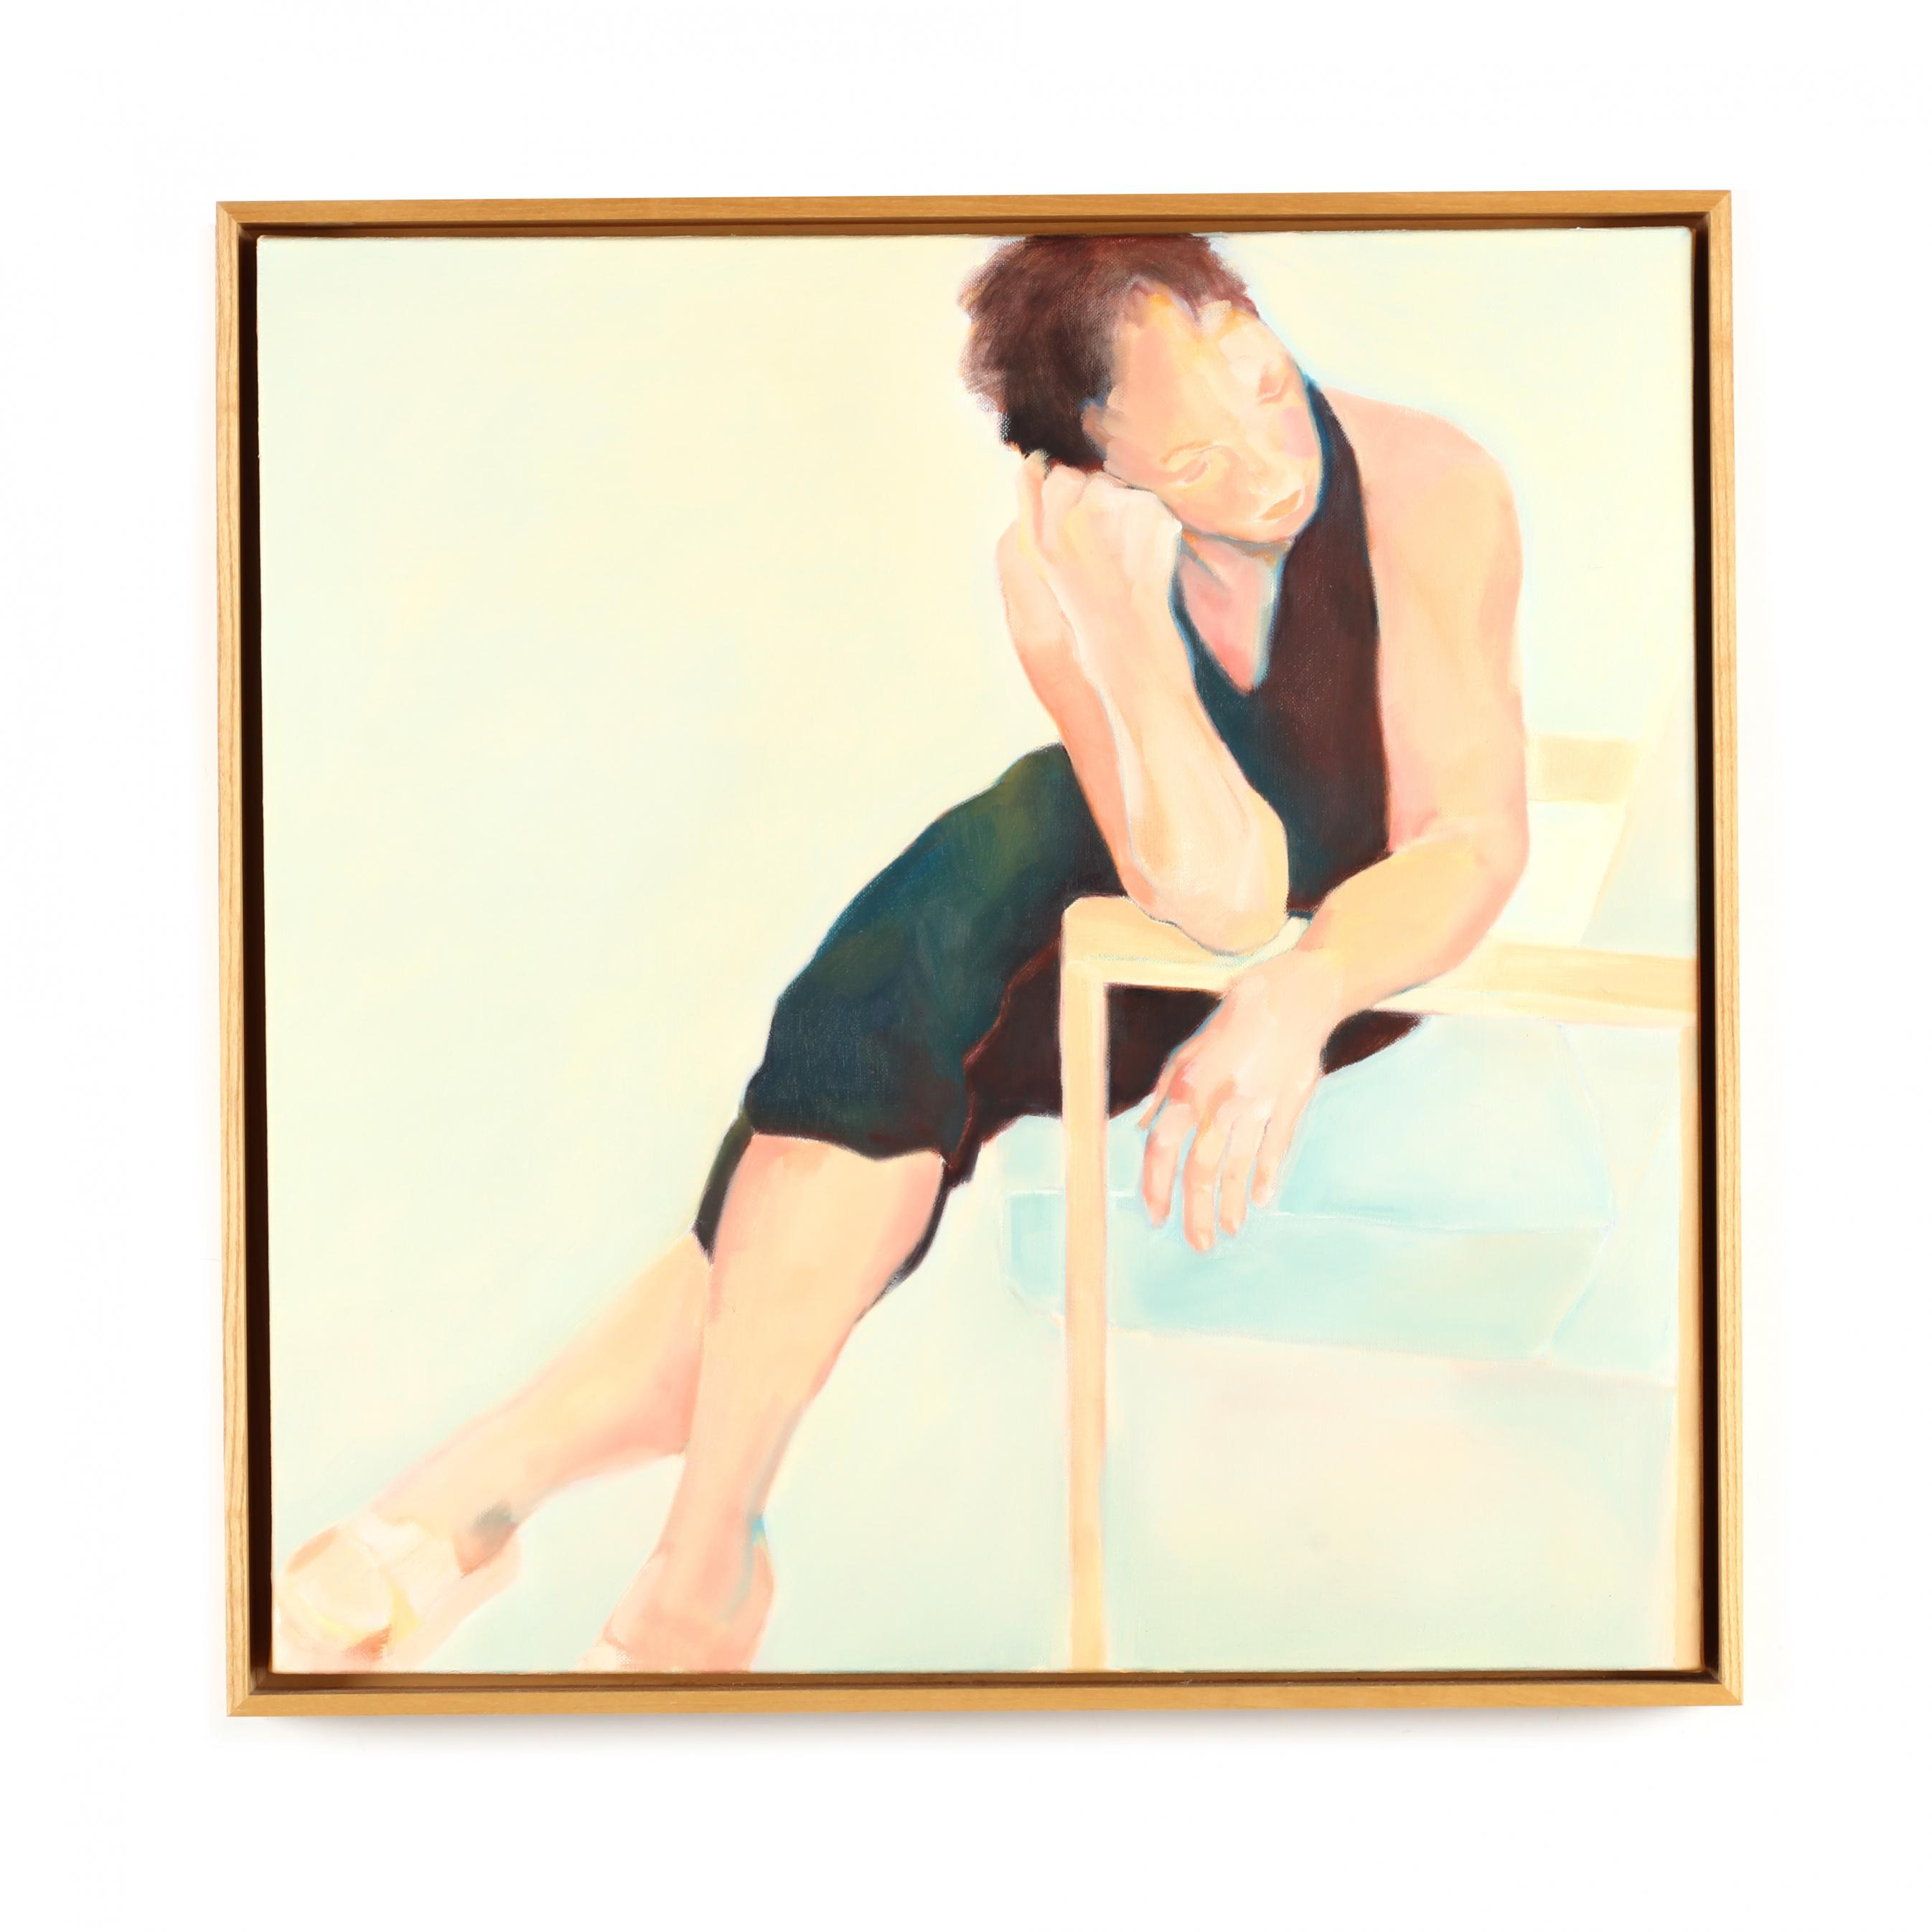 harriet-bellows-nc-ny-seated-woman